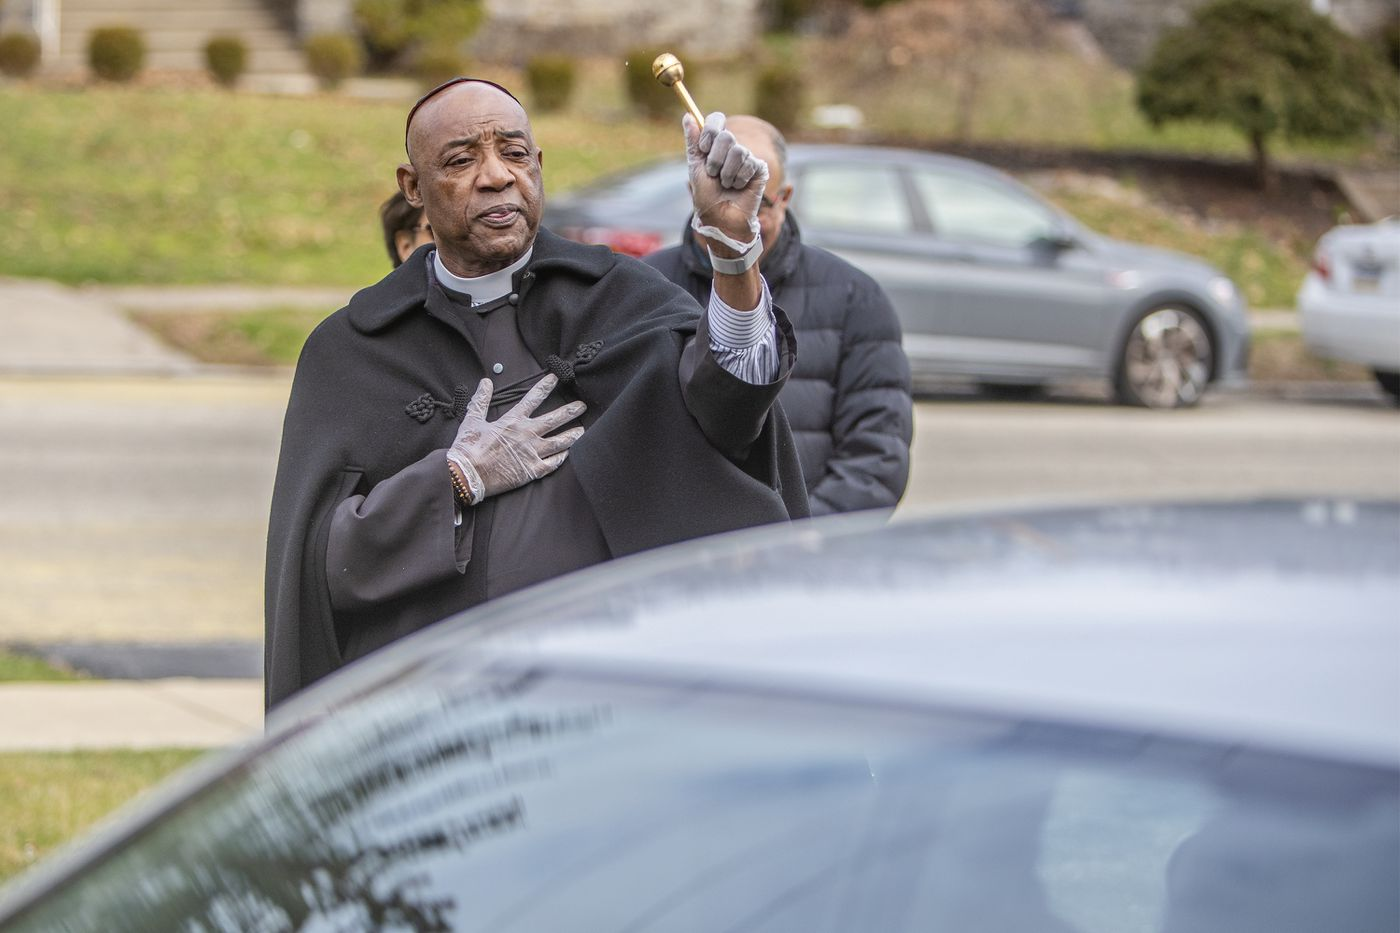 As a congregant of St. Thomas Church drives away after receiving a communion wafer, the Rev. Gerald Collins offers a blessing and sprinkle of holy water.